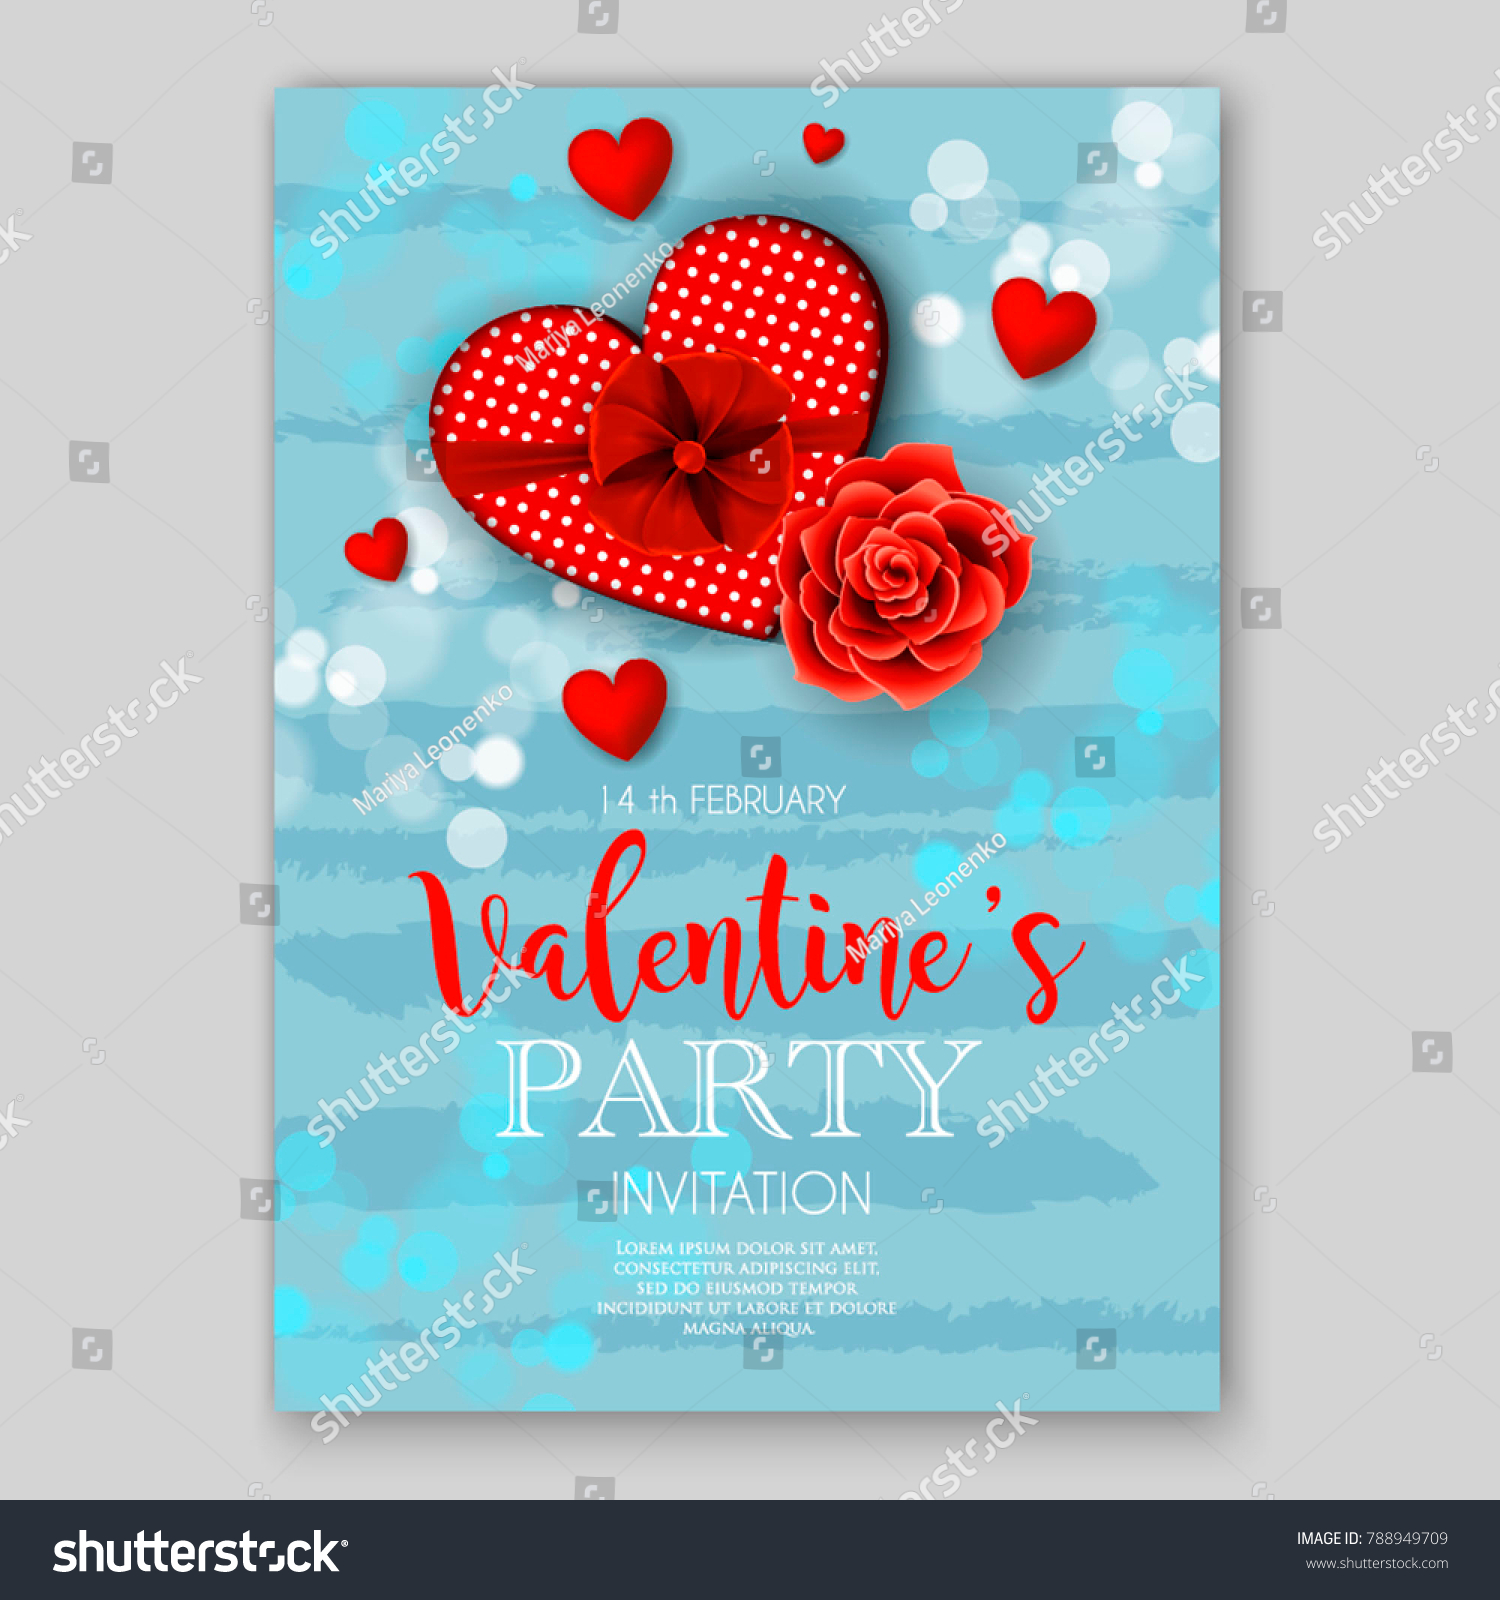 Valentines Day Party Invitation Red Hearts Stock Vector (Royalty ...